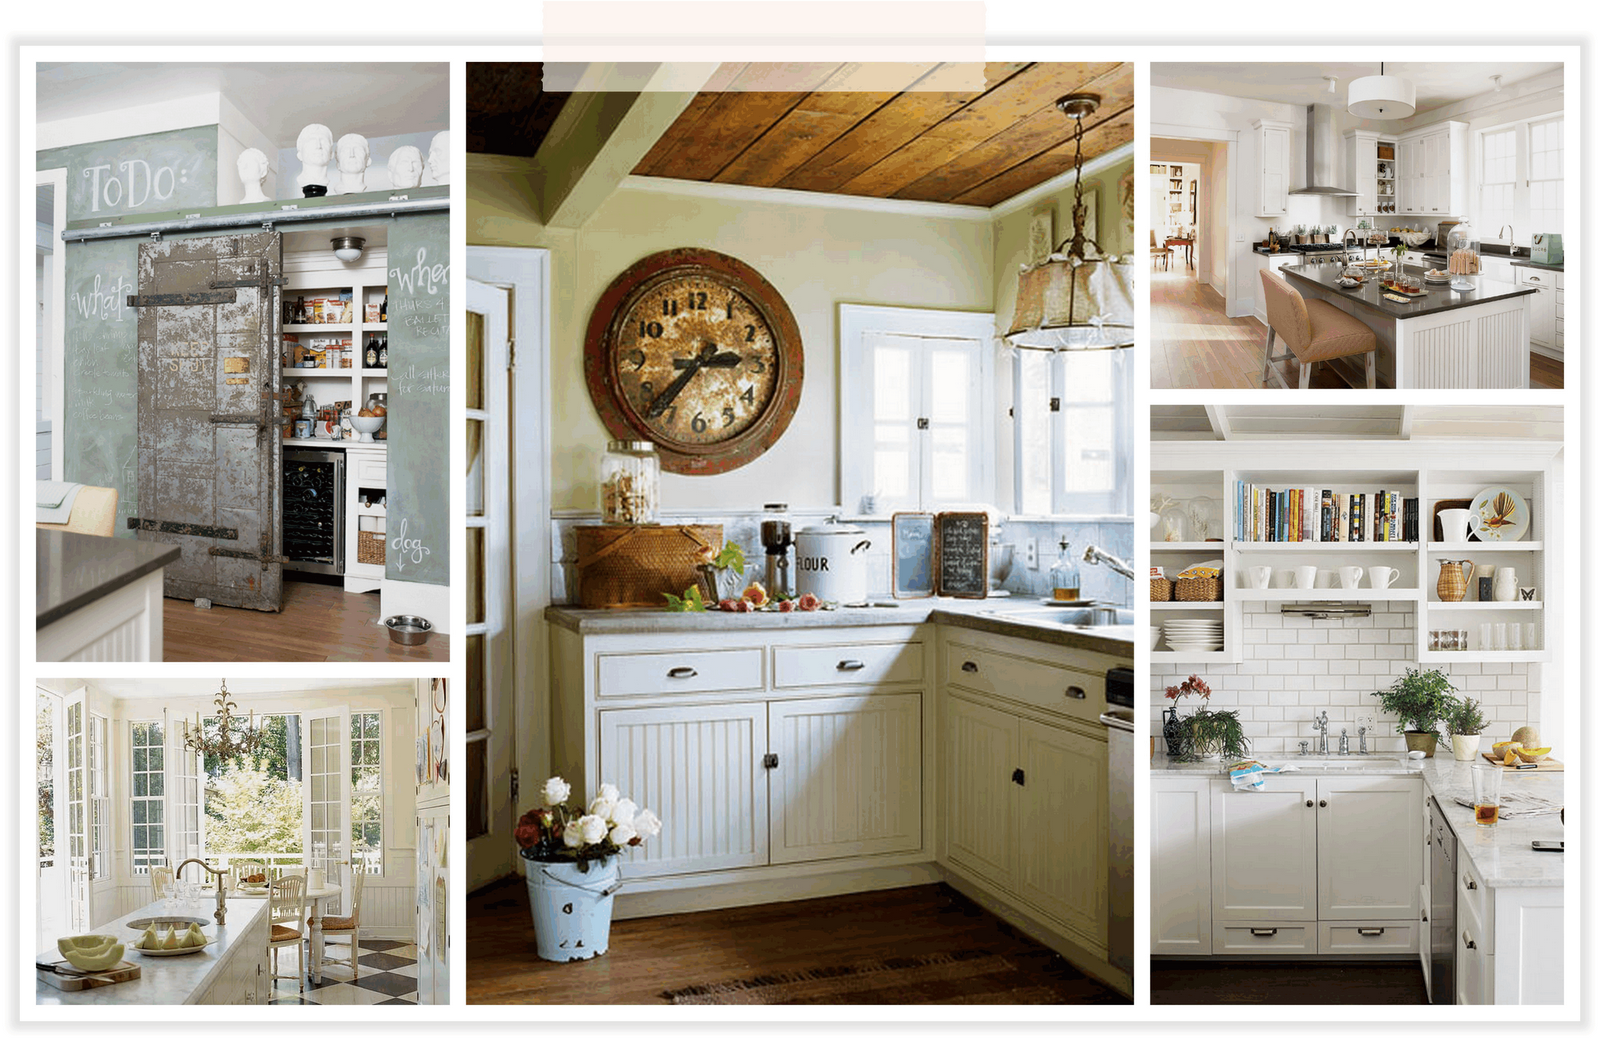 Http Hdimagelib Com Rustic Kitchen White Cabinets